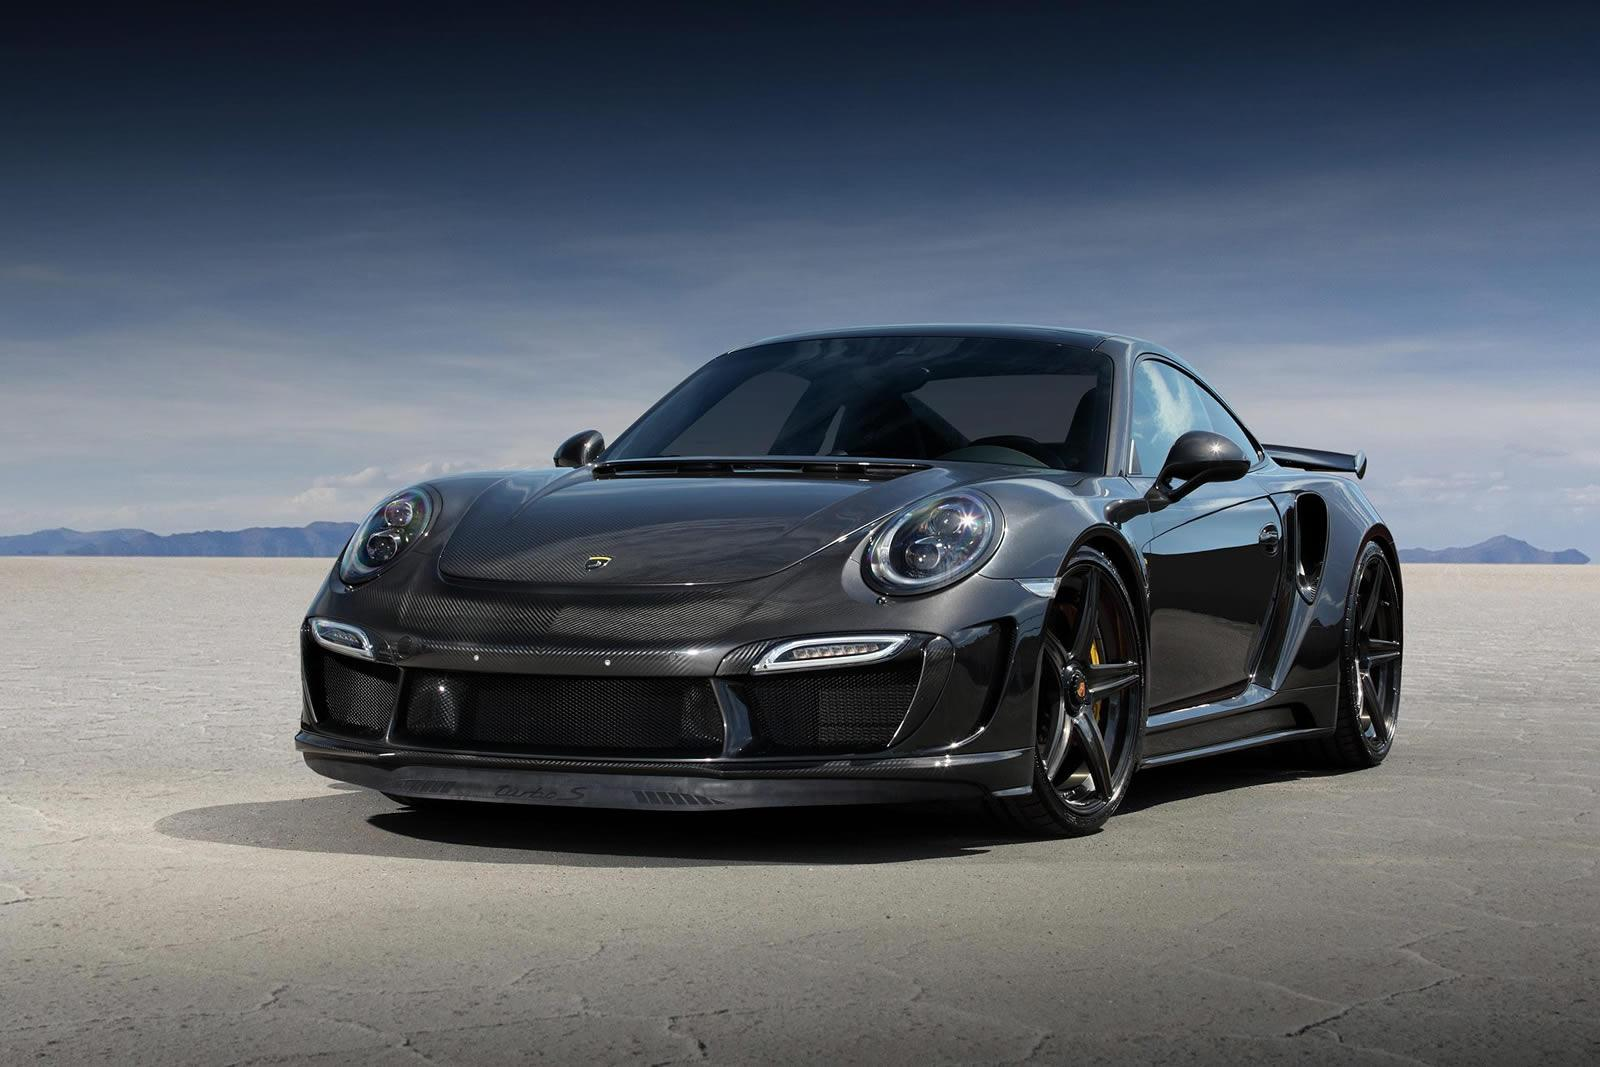 Official Topcar Porsche 911 Stinger Gtr Carbon Edition